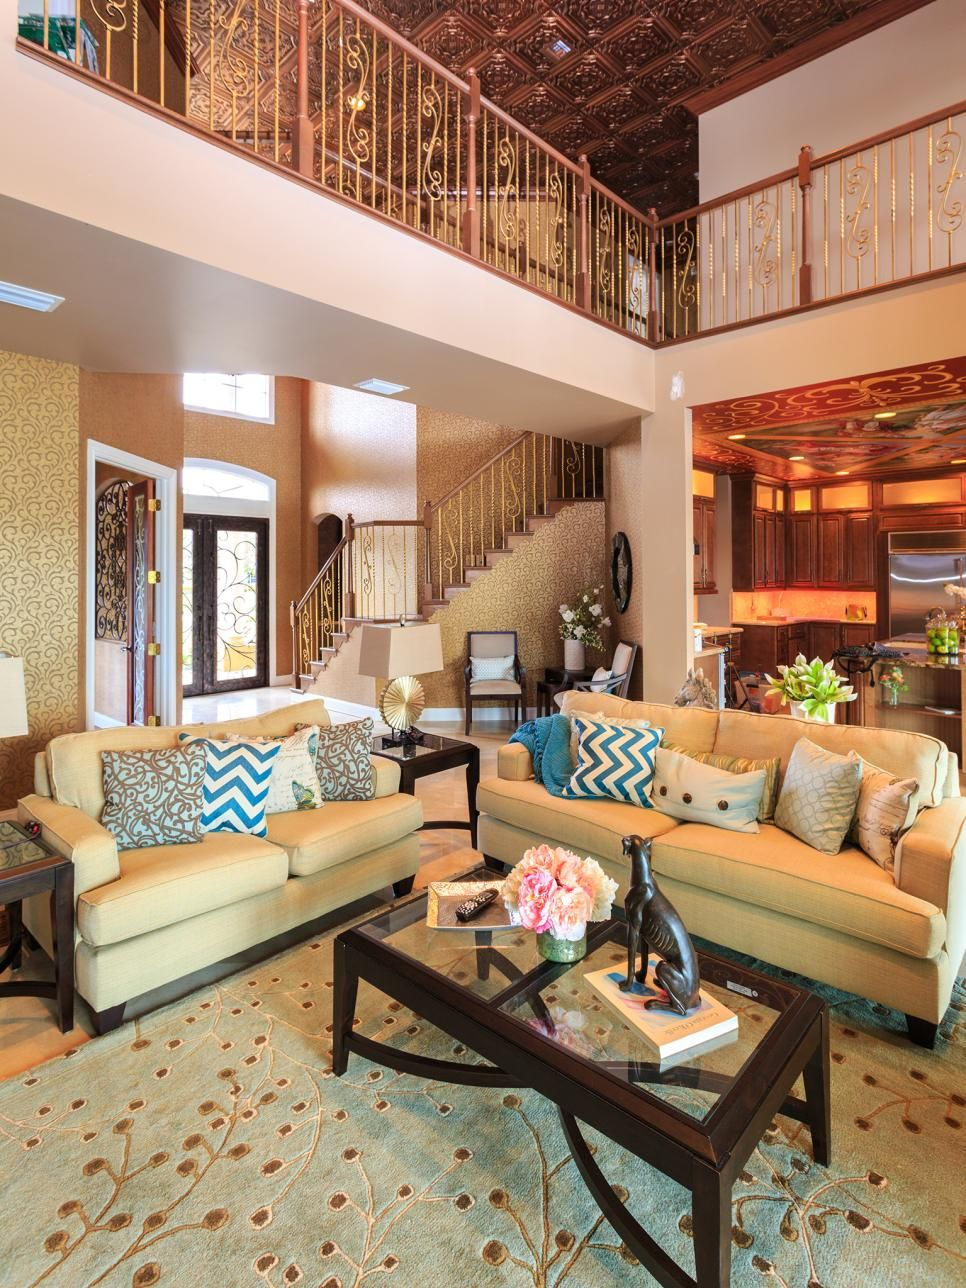 After Warm Beige And Copper Hues And Ample Furnishings Help Bring